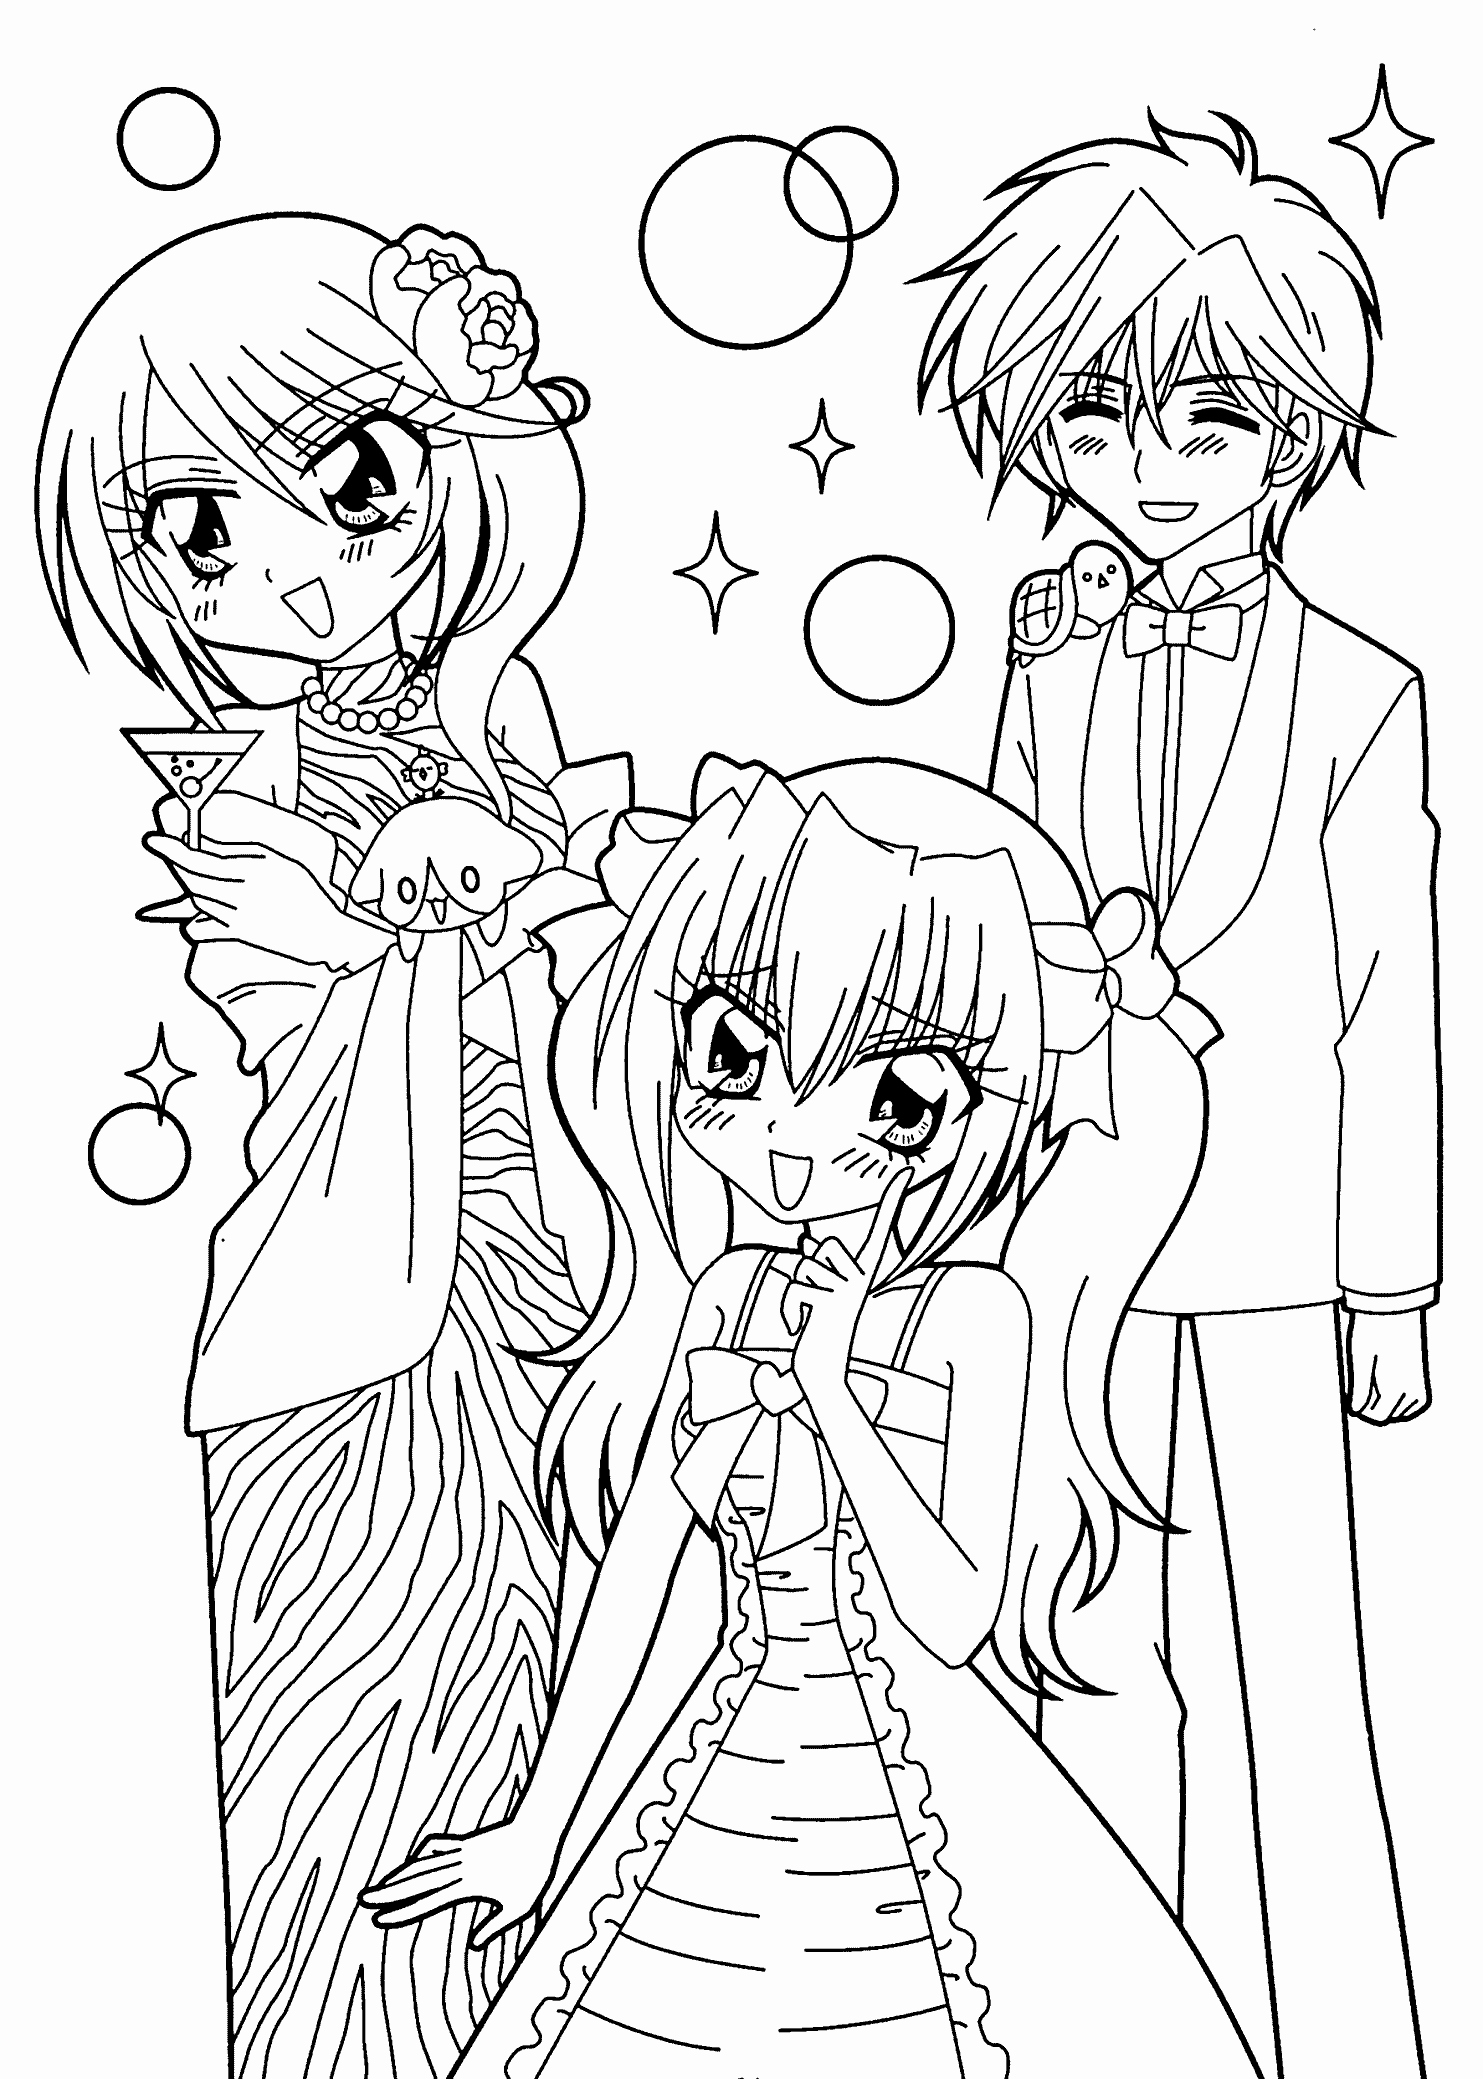 Printable Anime Coloring Pages - Free Coloring Pages Printable New Kilari and Seiji Anime Coloring Printable